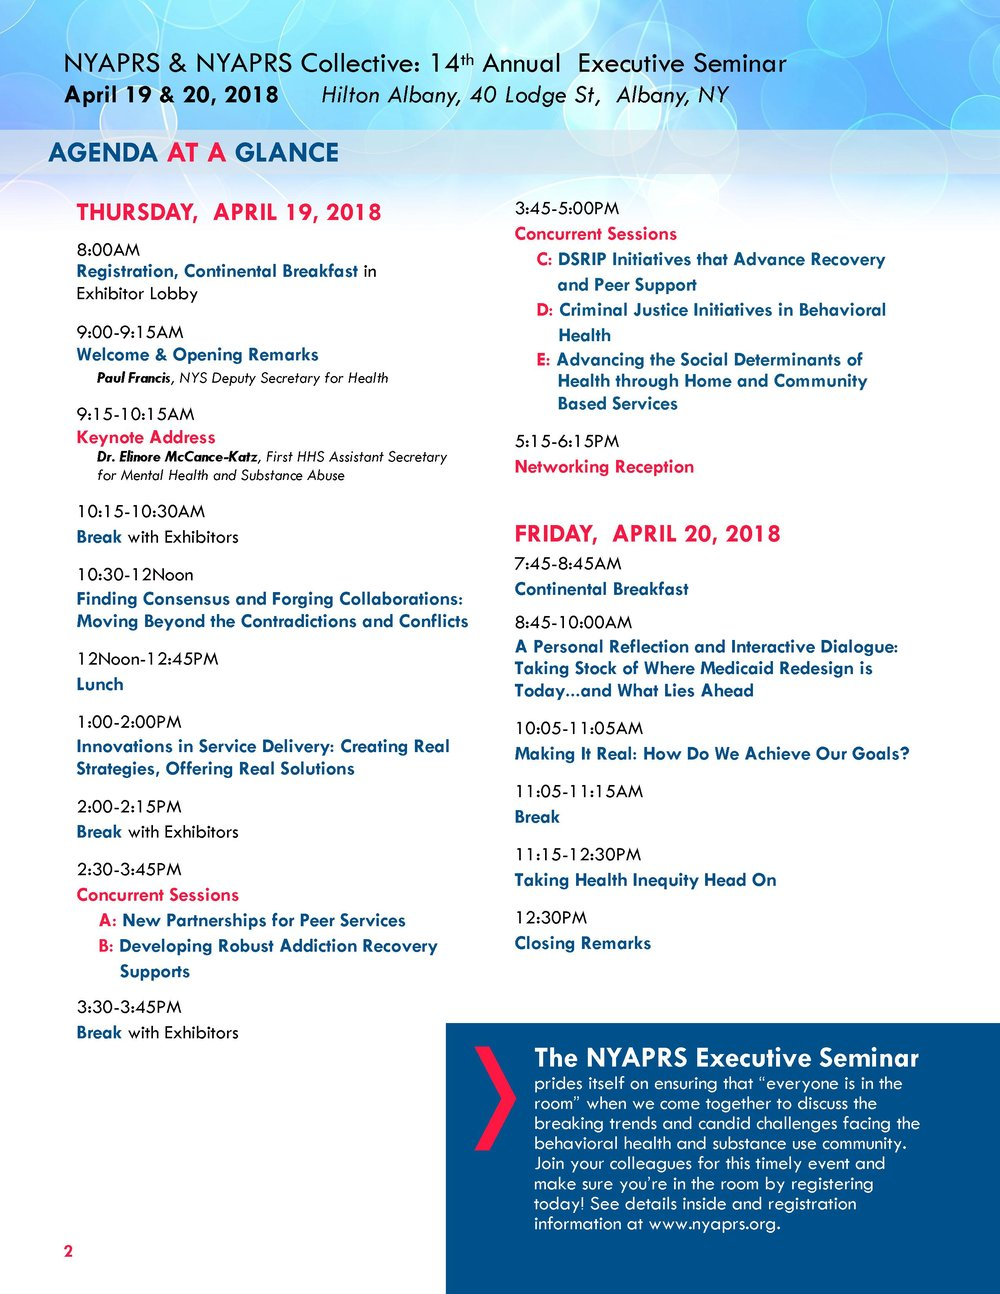 NYAPRS 2018 Executive Seminar Program-2.jpg